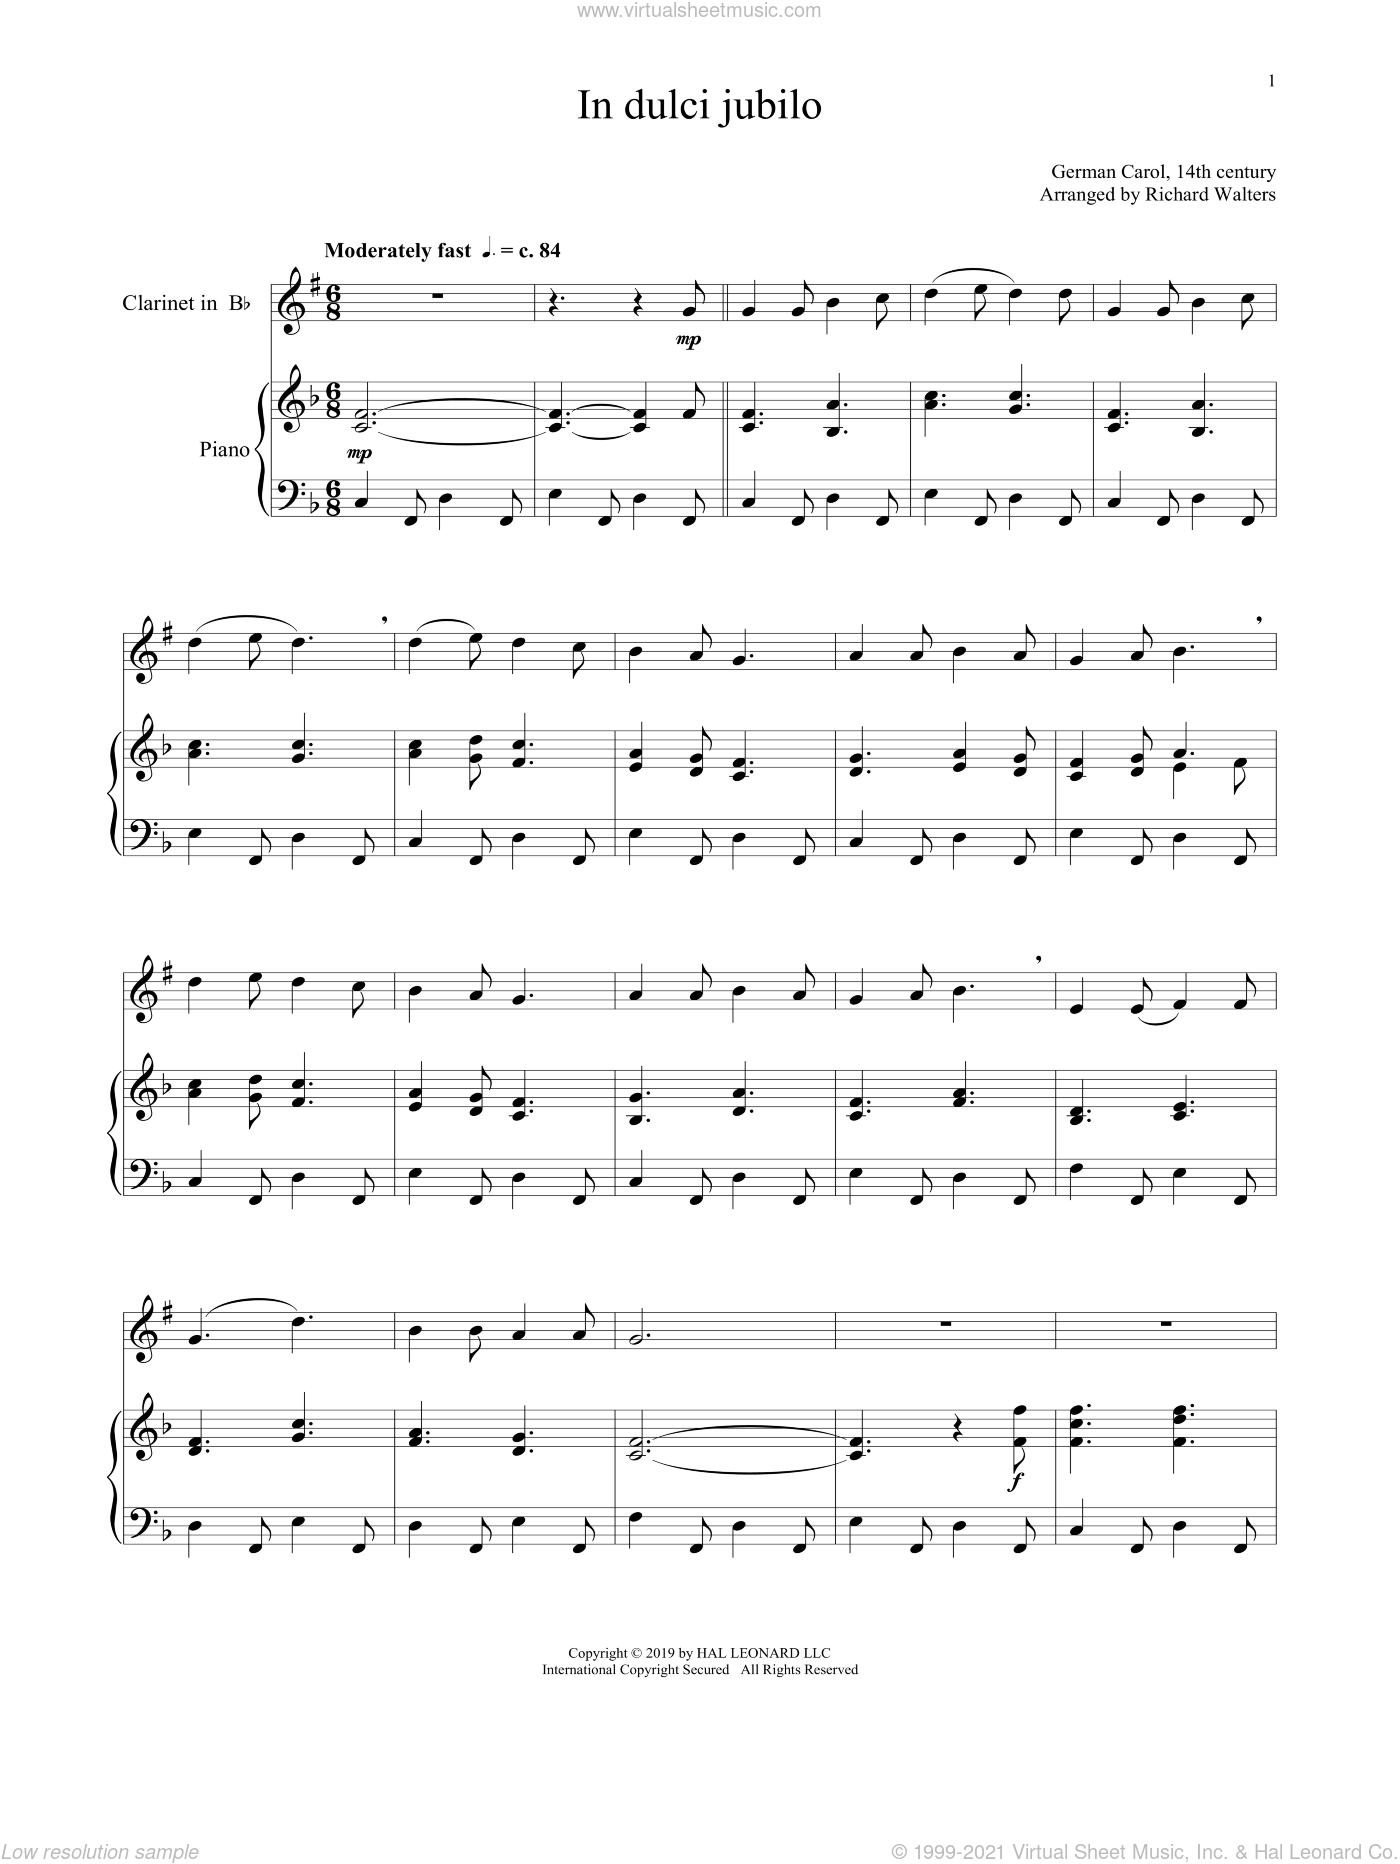 In Dulci Jubilo sheet music for clarinet and piano  and 14th Century German Melody, intermediate skill level